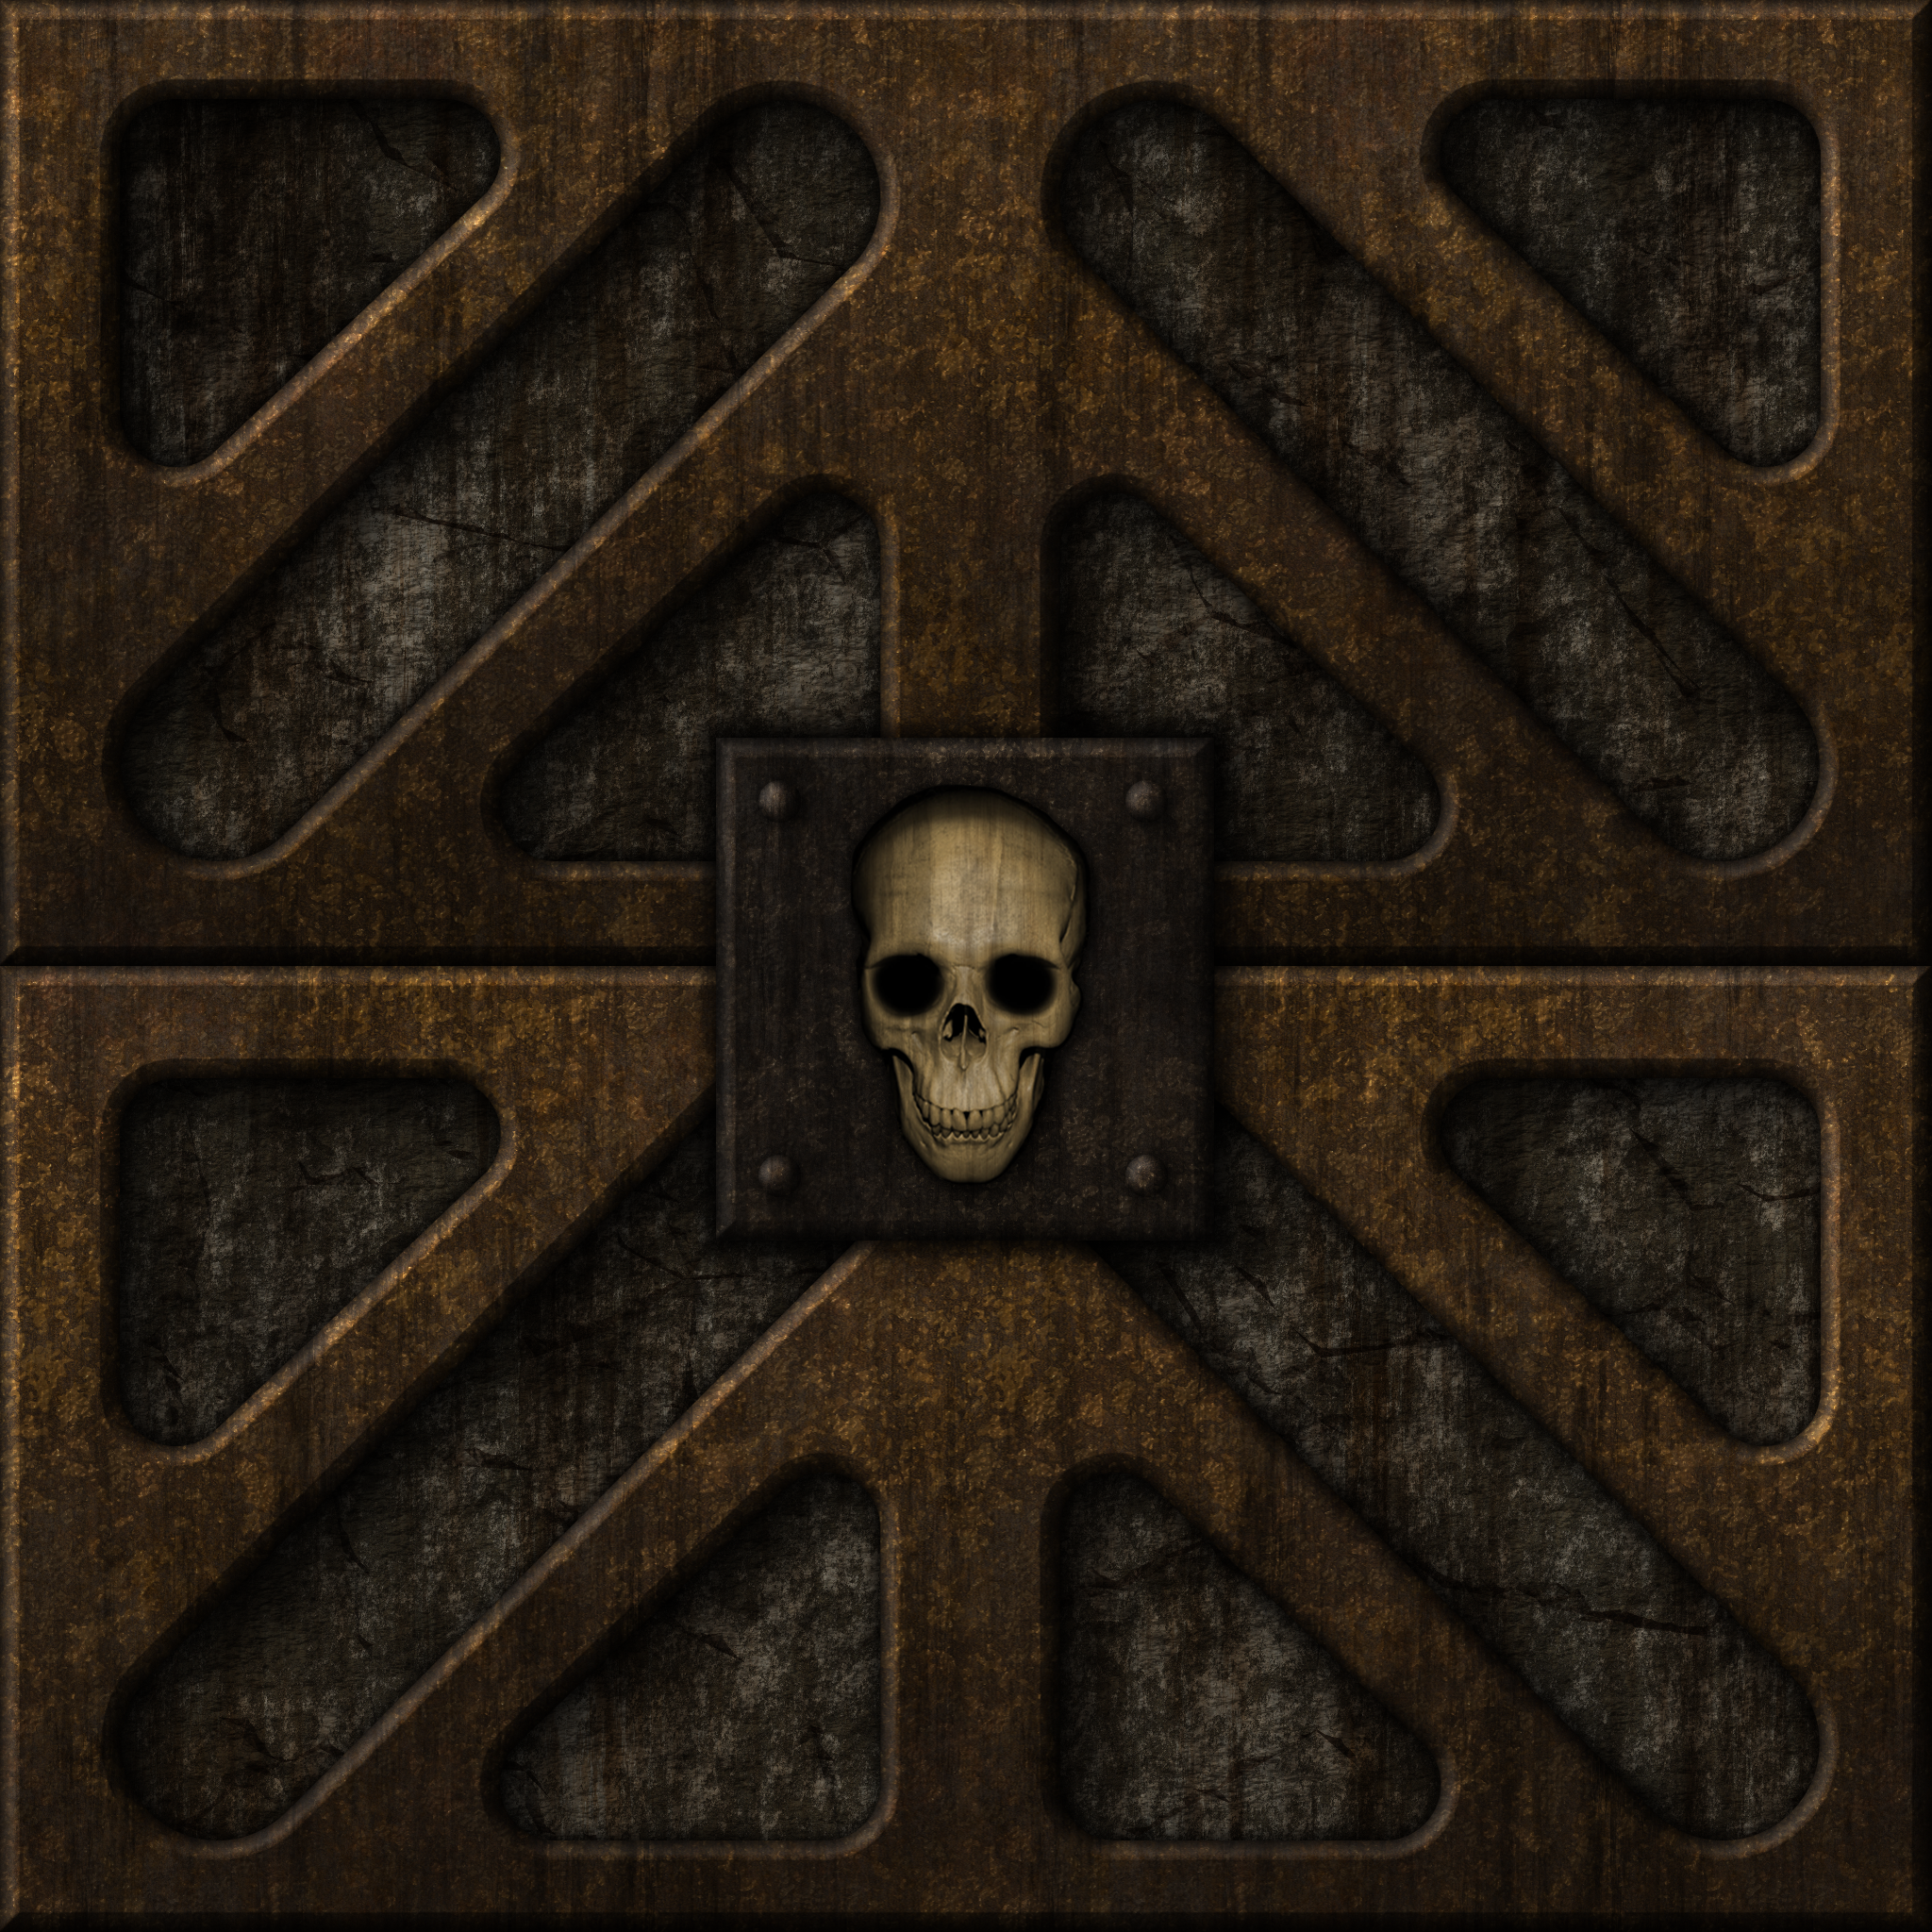 Stone/Rust Skull Door by Hoover1979